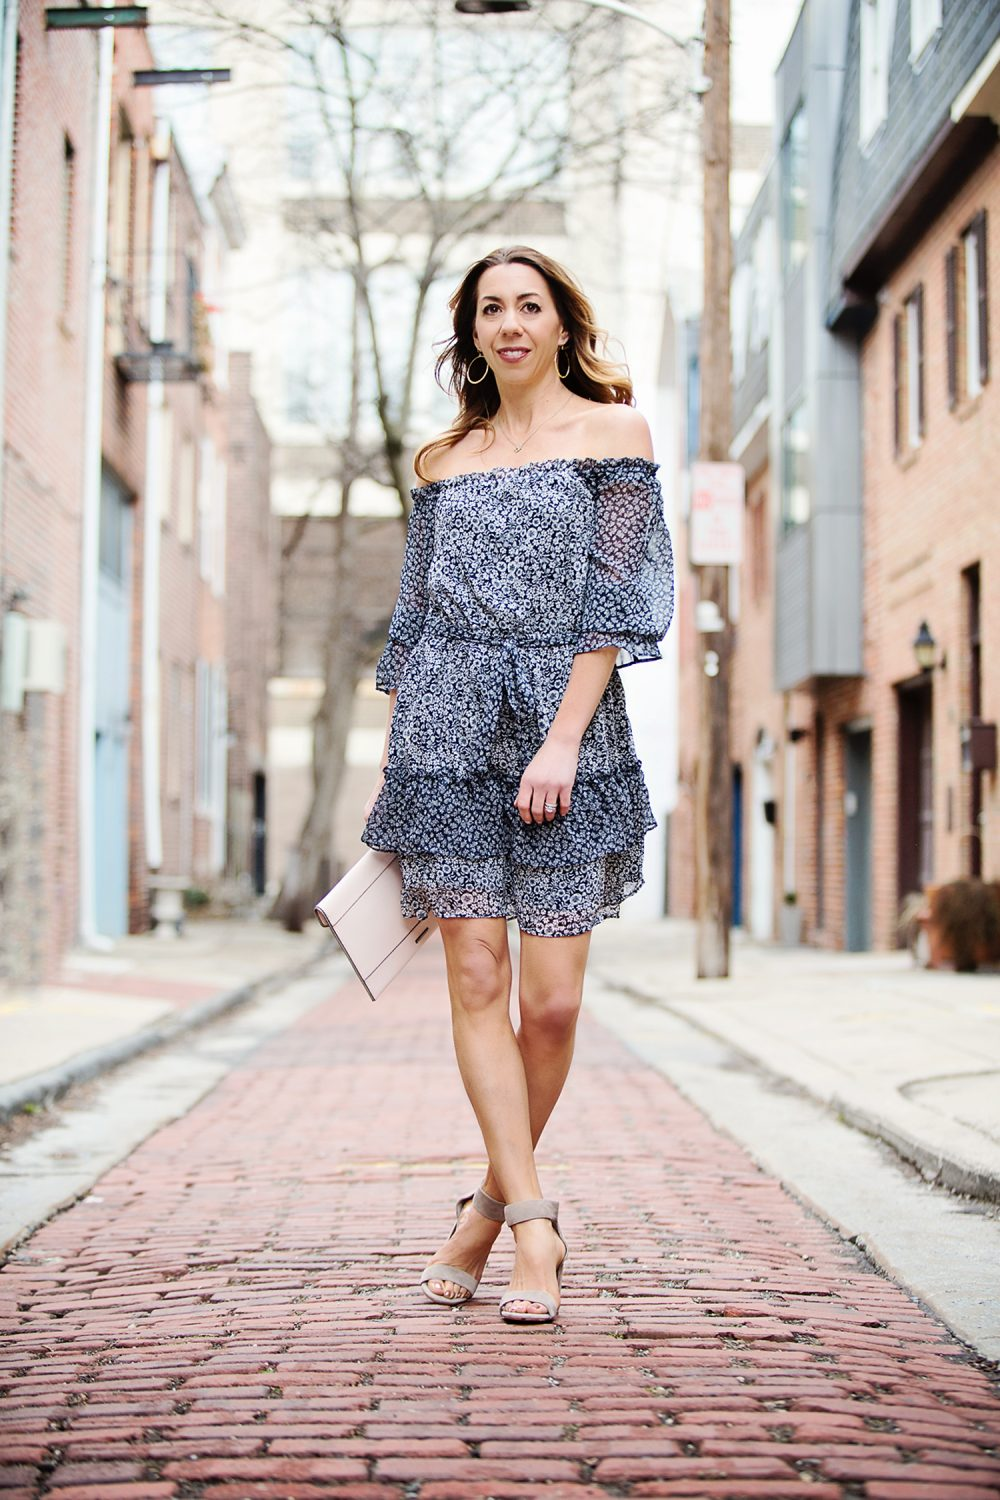 The Motherchic wearing loft off the shoulder dress